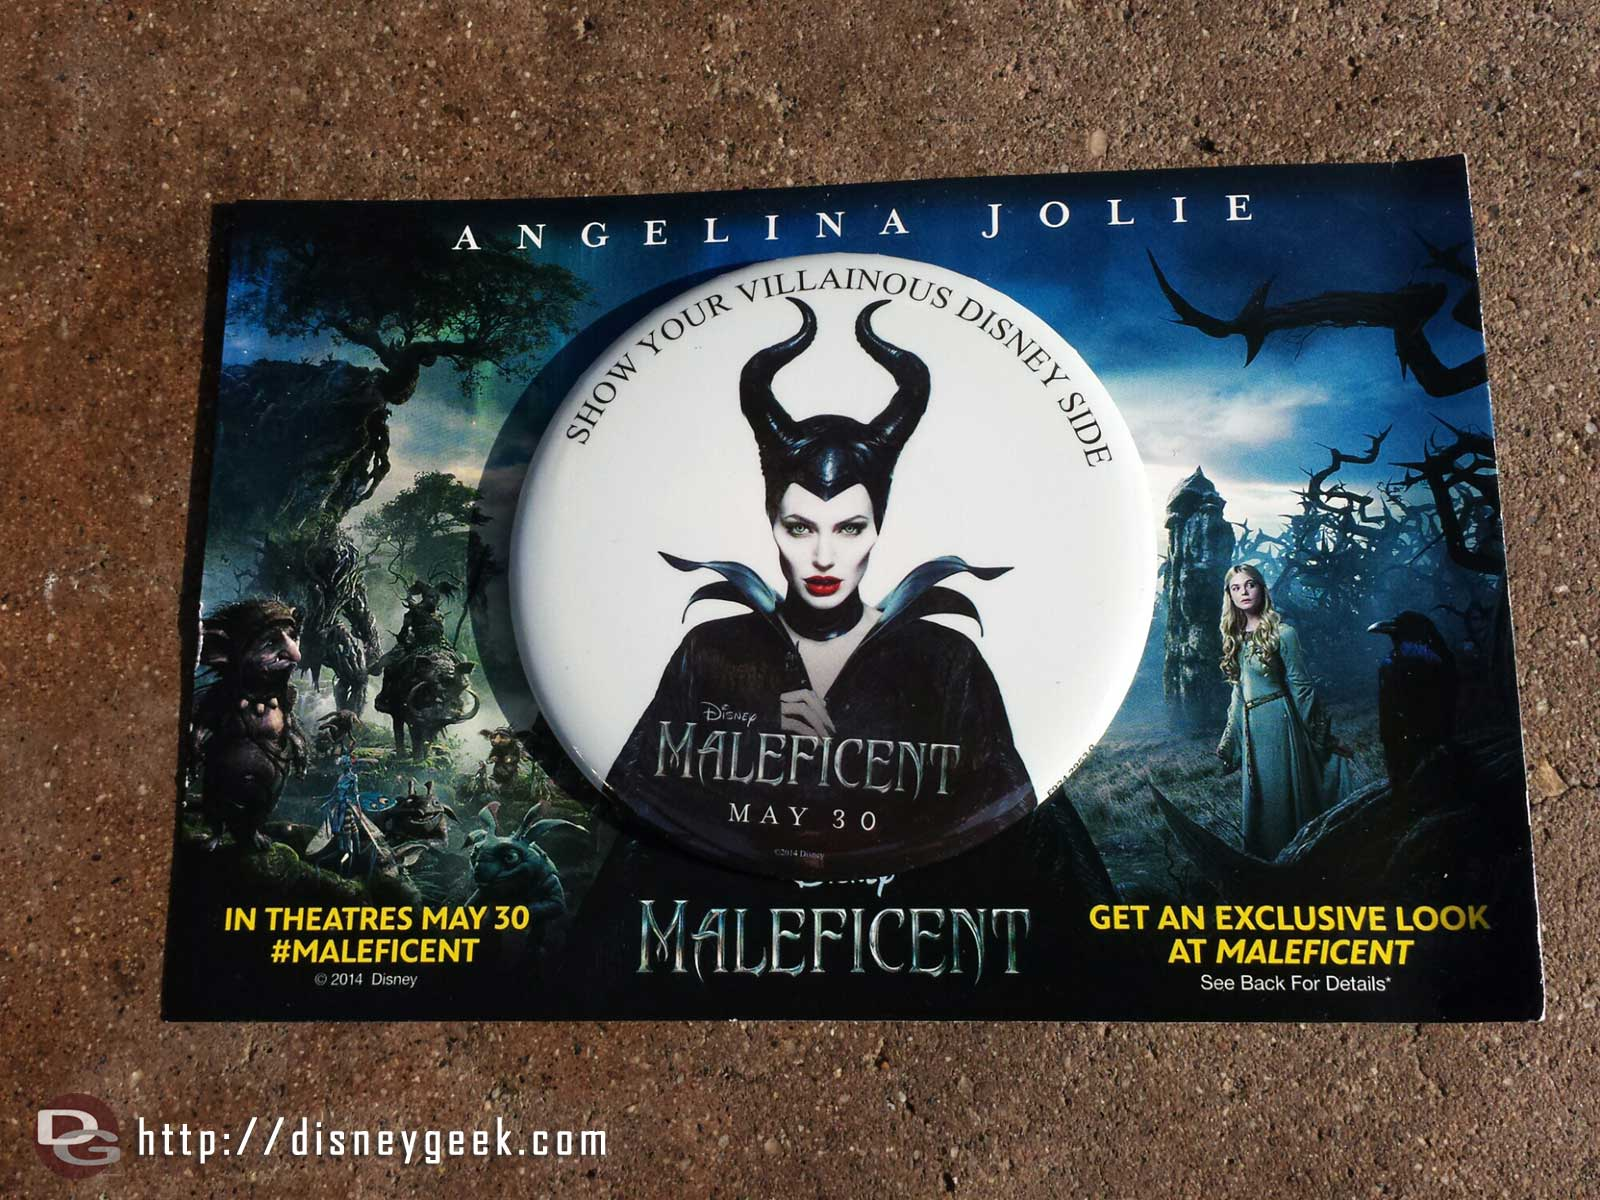 Maleficent buttons and card are being passed out as you enter today #Disney24  #DisneySide